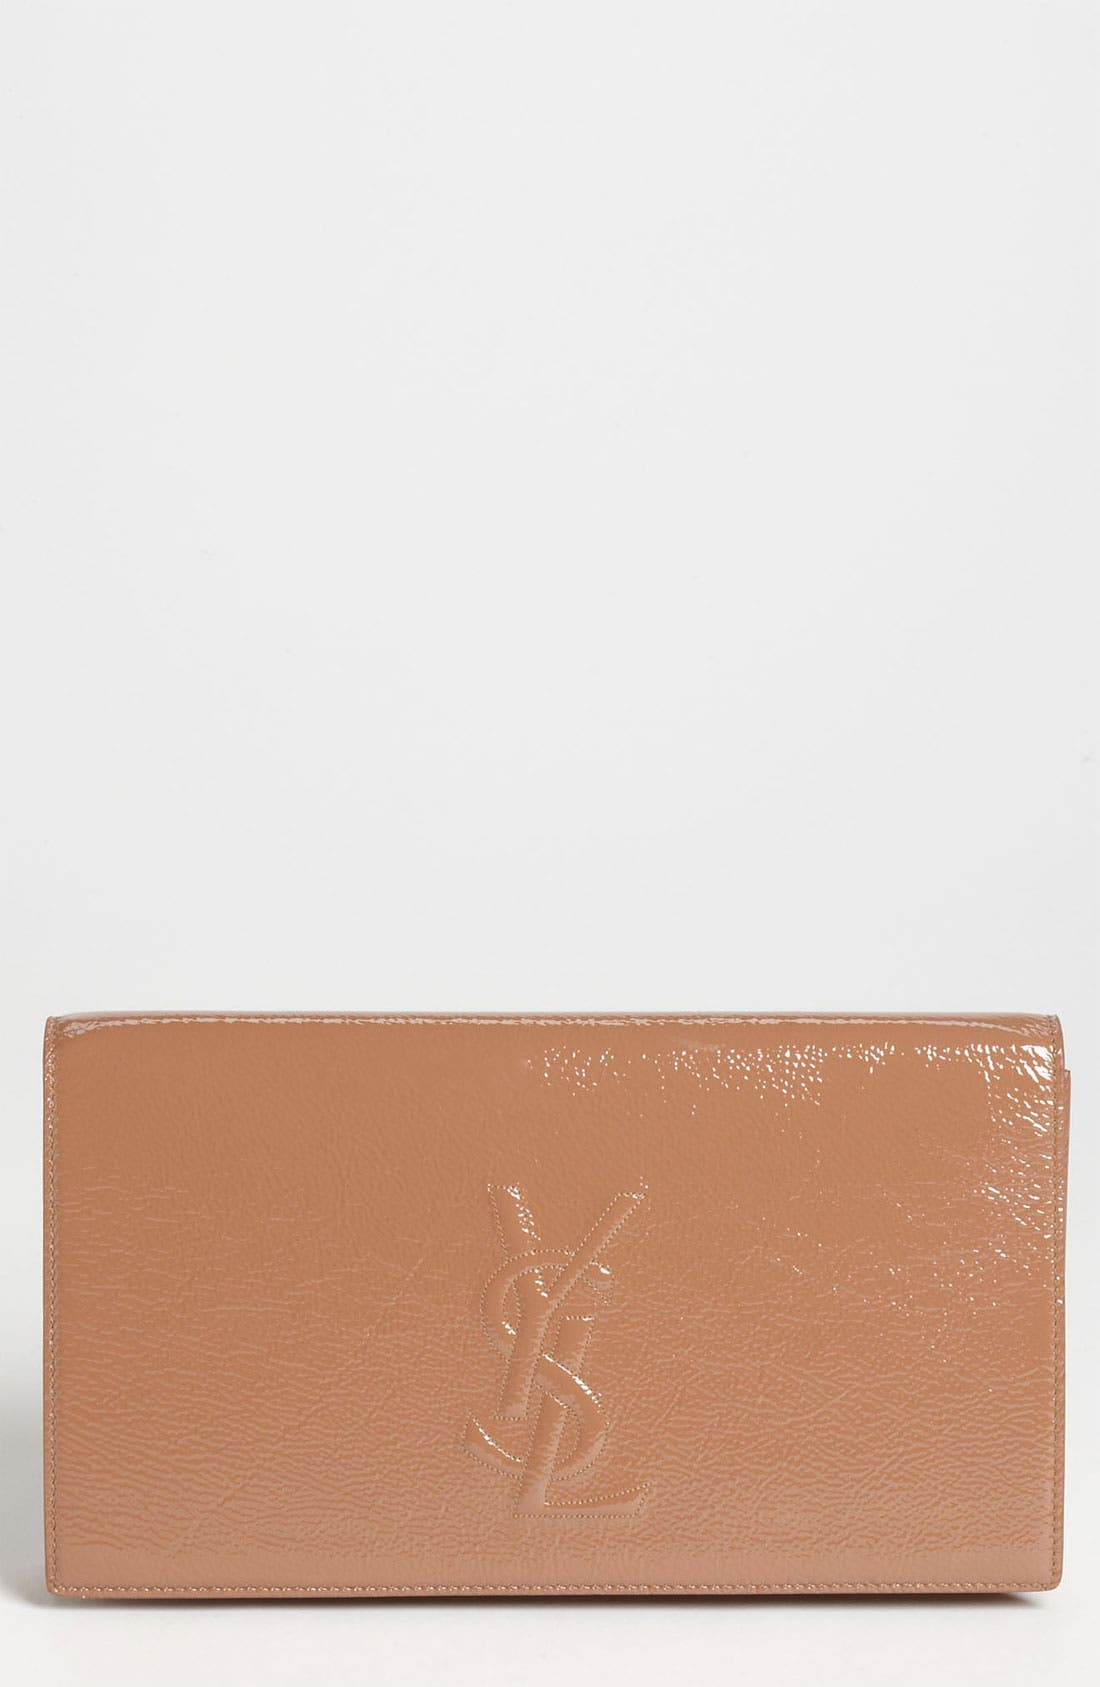 Alternate Image 1 Selected - Saint Laurent 'Belle de Jour' Patent Leather Clutch